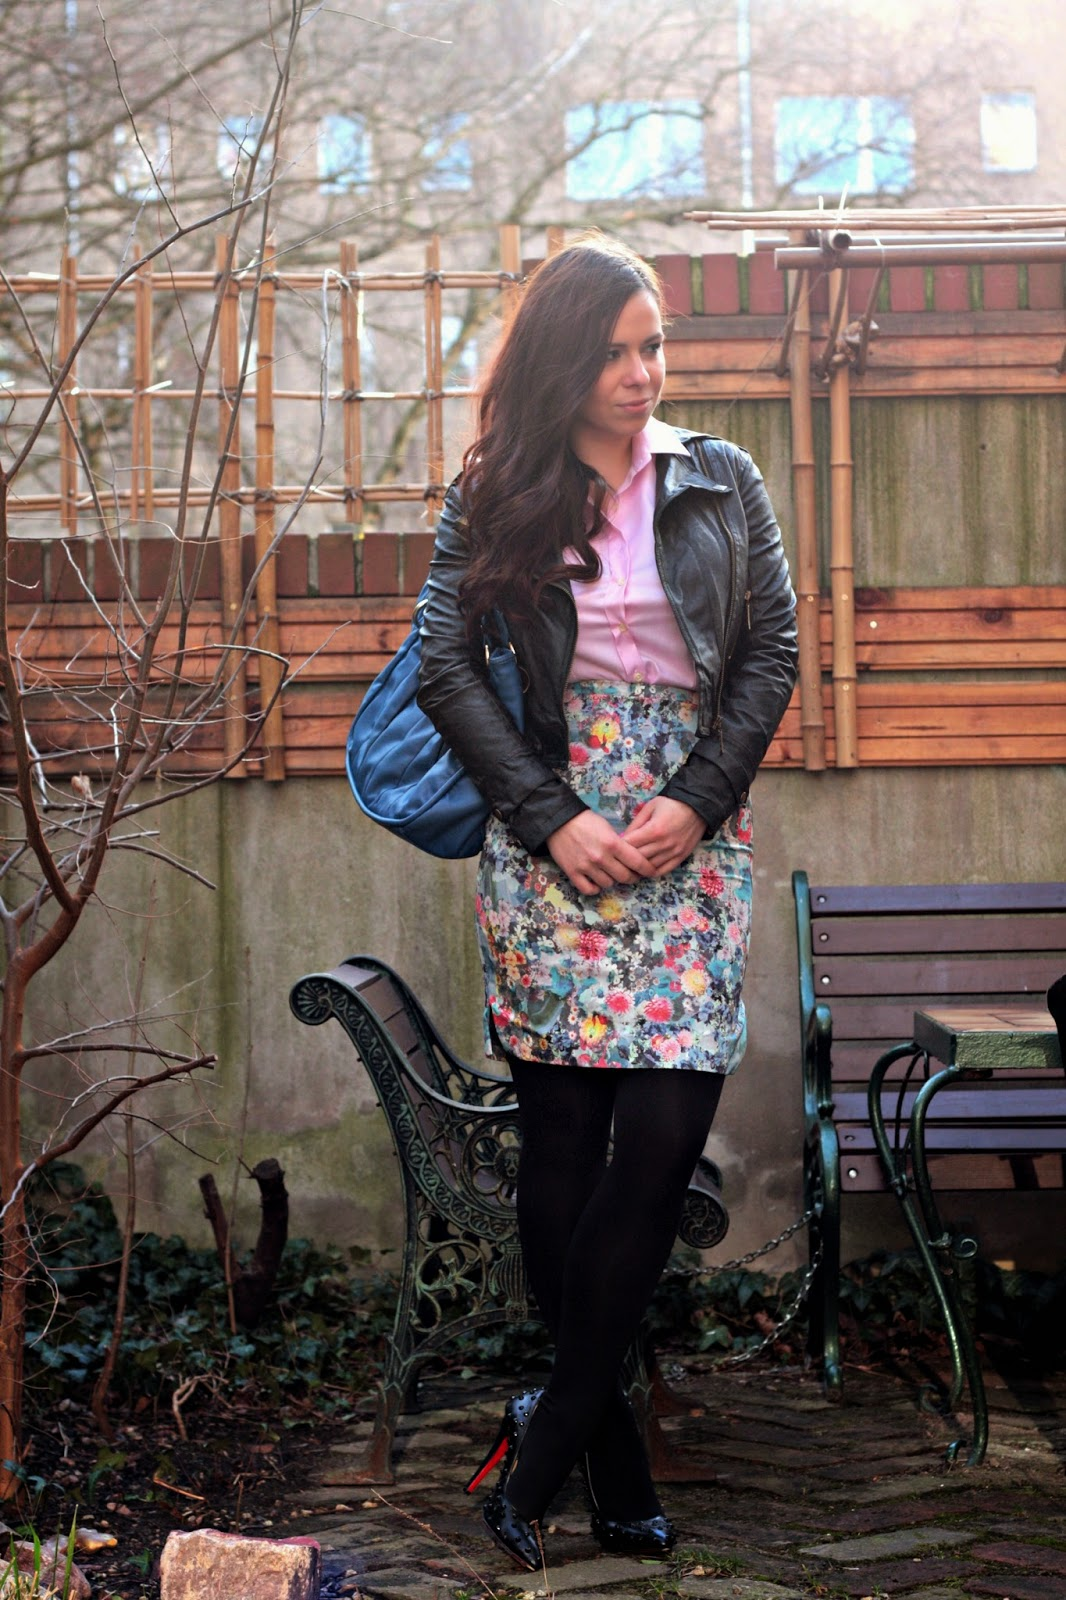 cobalt blue bag, pastel floral skirt, powder pink shirt, black faux leather jacket, spiked louboutin stilettos, berlin, fashion blogger, style class, bloggers, cute hairstyle, custom made shirt, pencil skirt, H&M, Rosegal jacket, blue christian dior bag